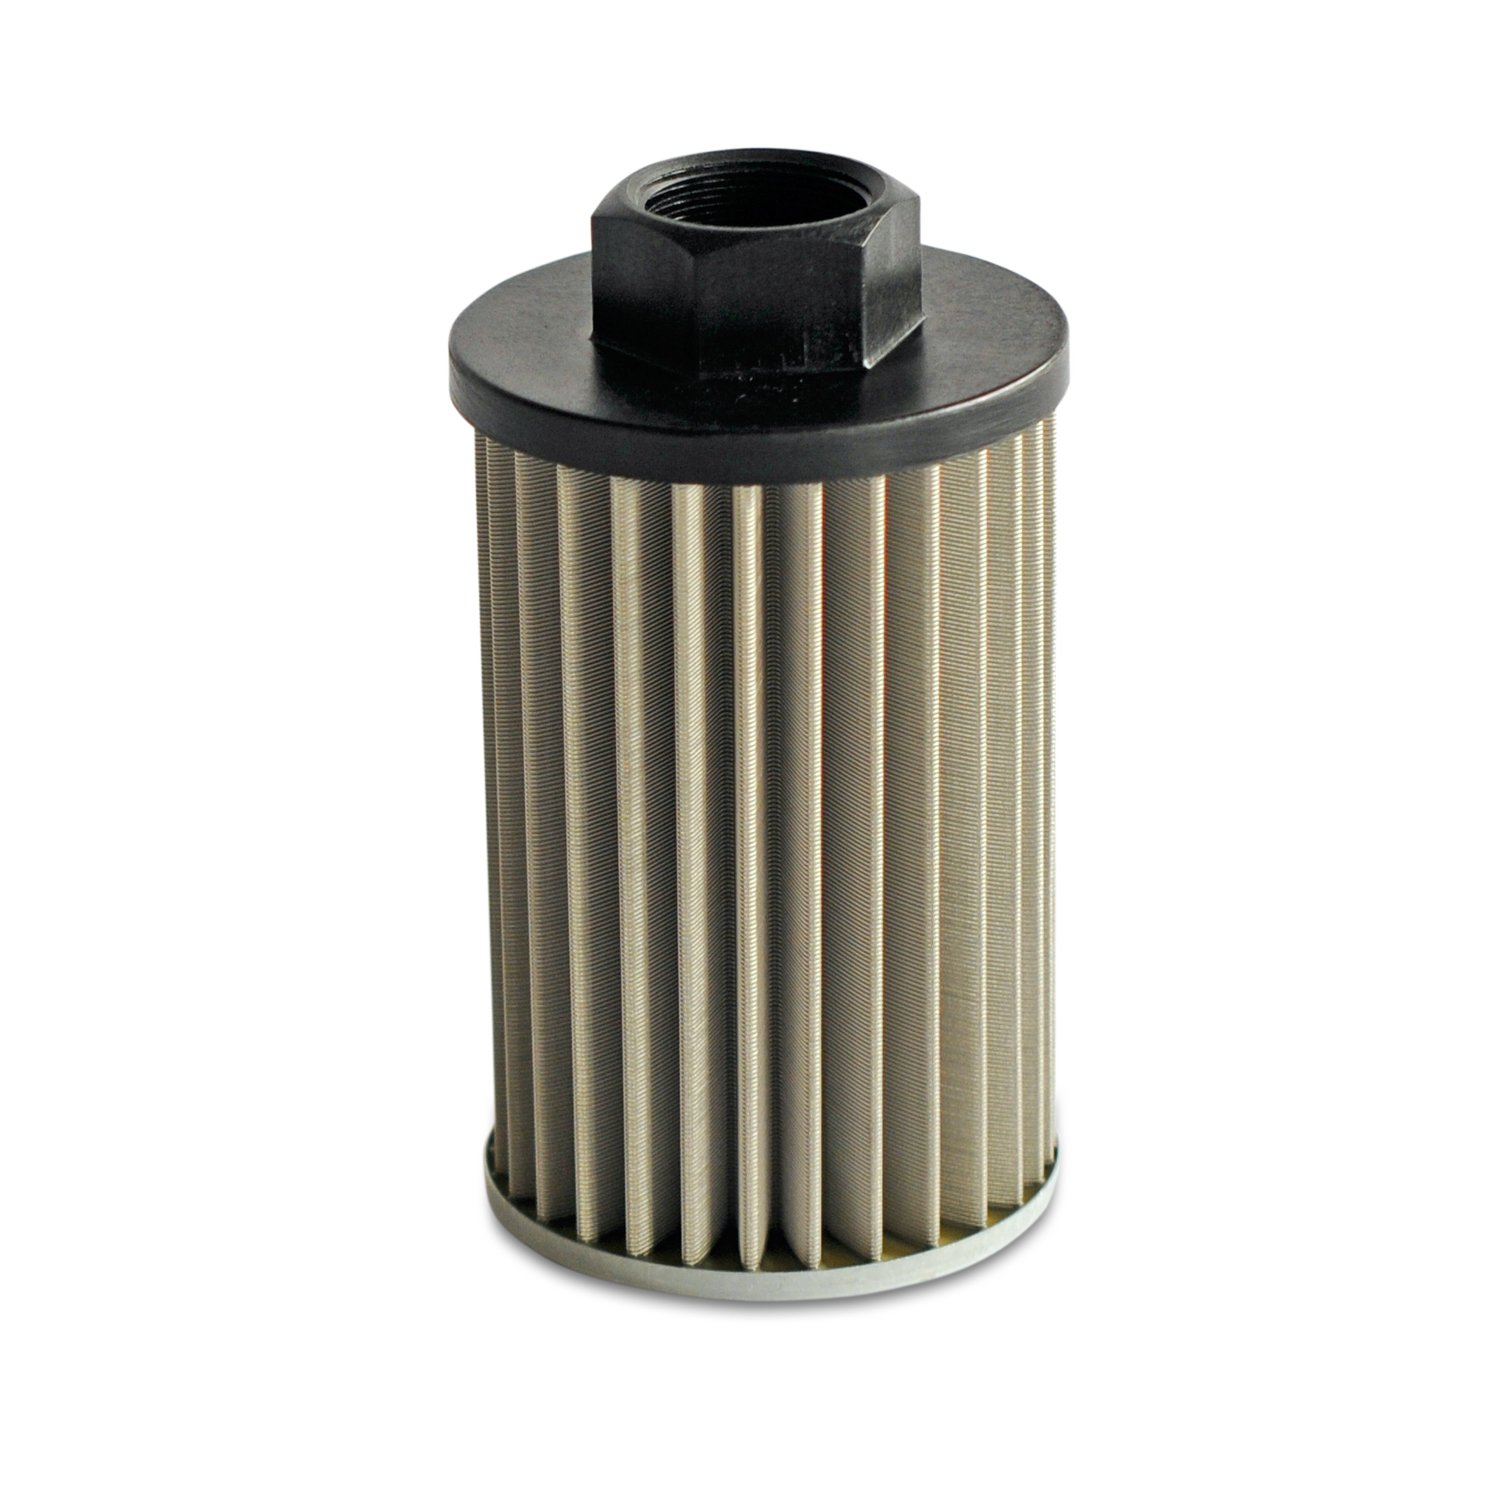 Filtration Group, PI-1710/52/DRG 100 Suction Filter by Filtration Group